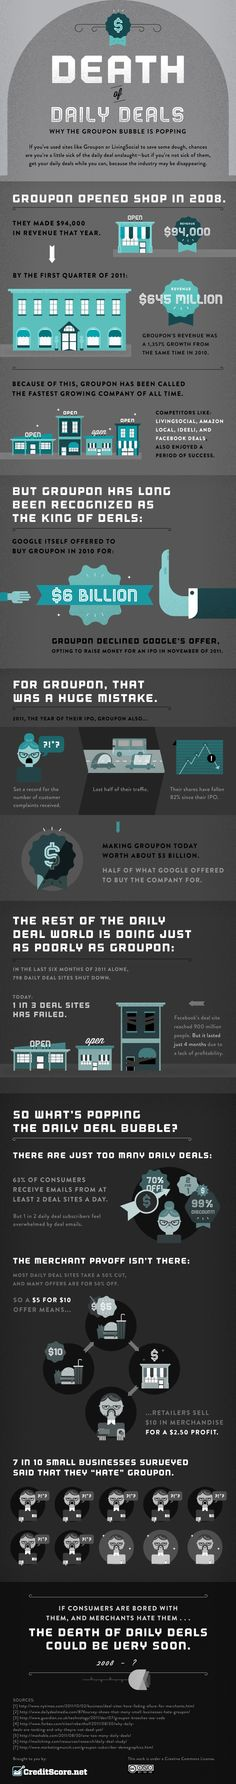 The Death of Daily Deals: Why the Groupon Bubble is Popping